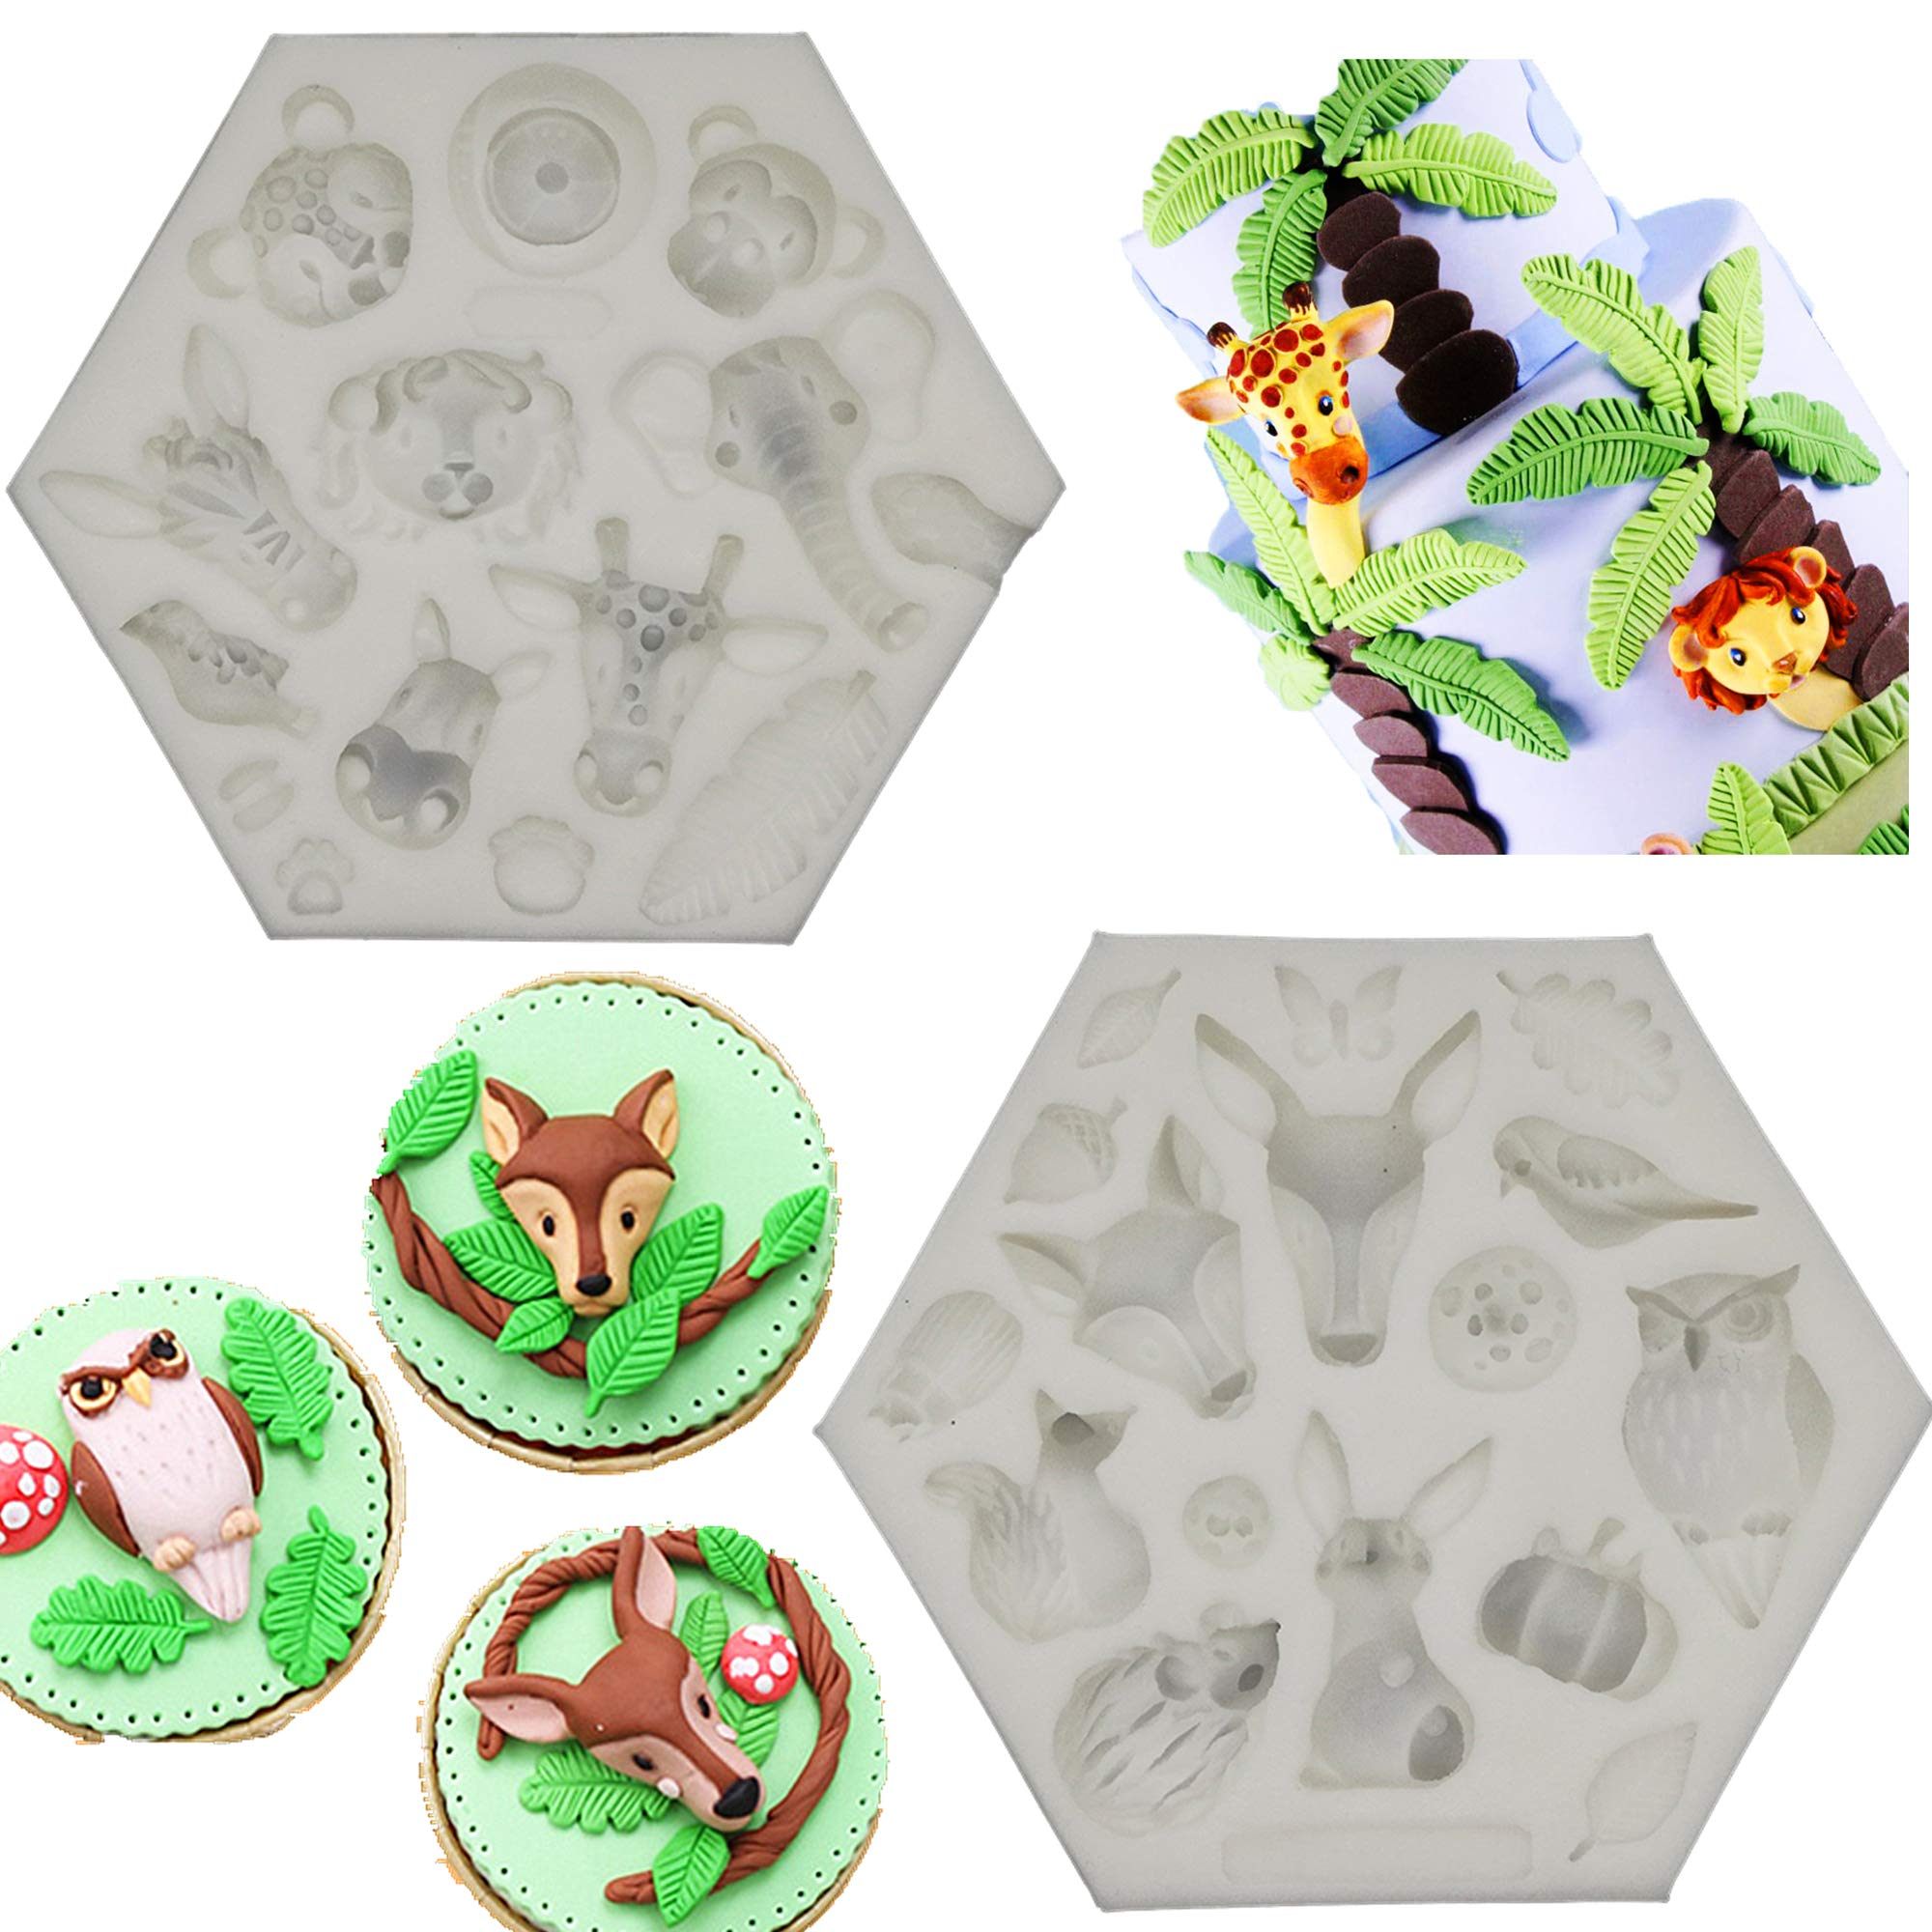 Wootkey Set of 2 Cute Forest Animal Party Fondant Silicone Mold for Sugarcraft, Cake Border Decoration, Cupcake Topper, Polymer Clay, Crafting Moulds